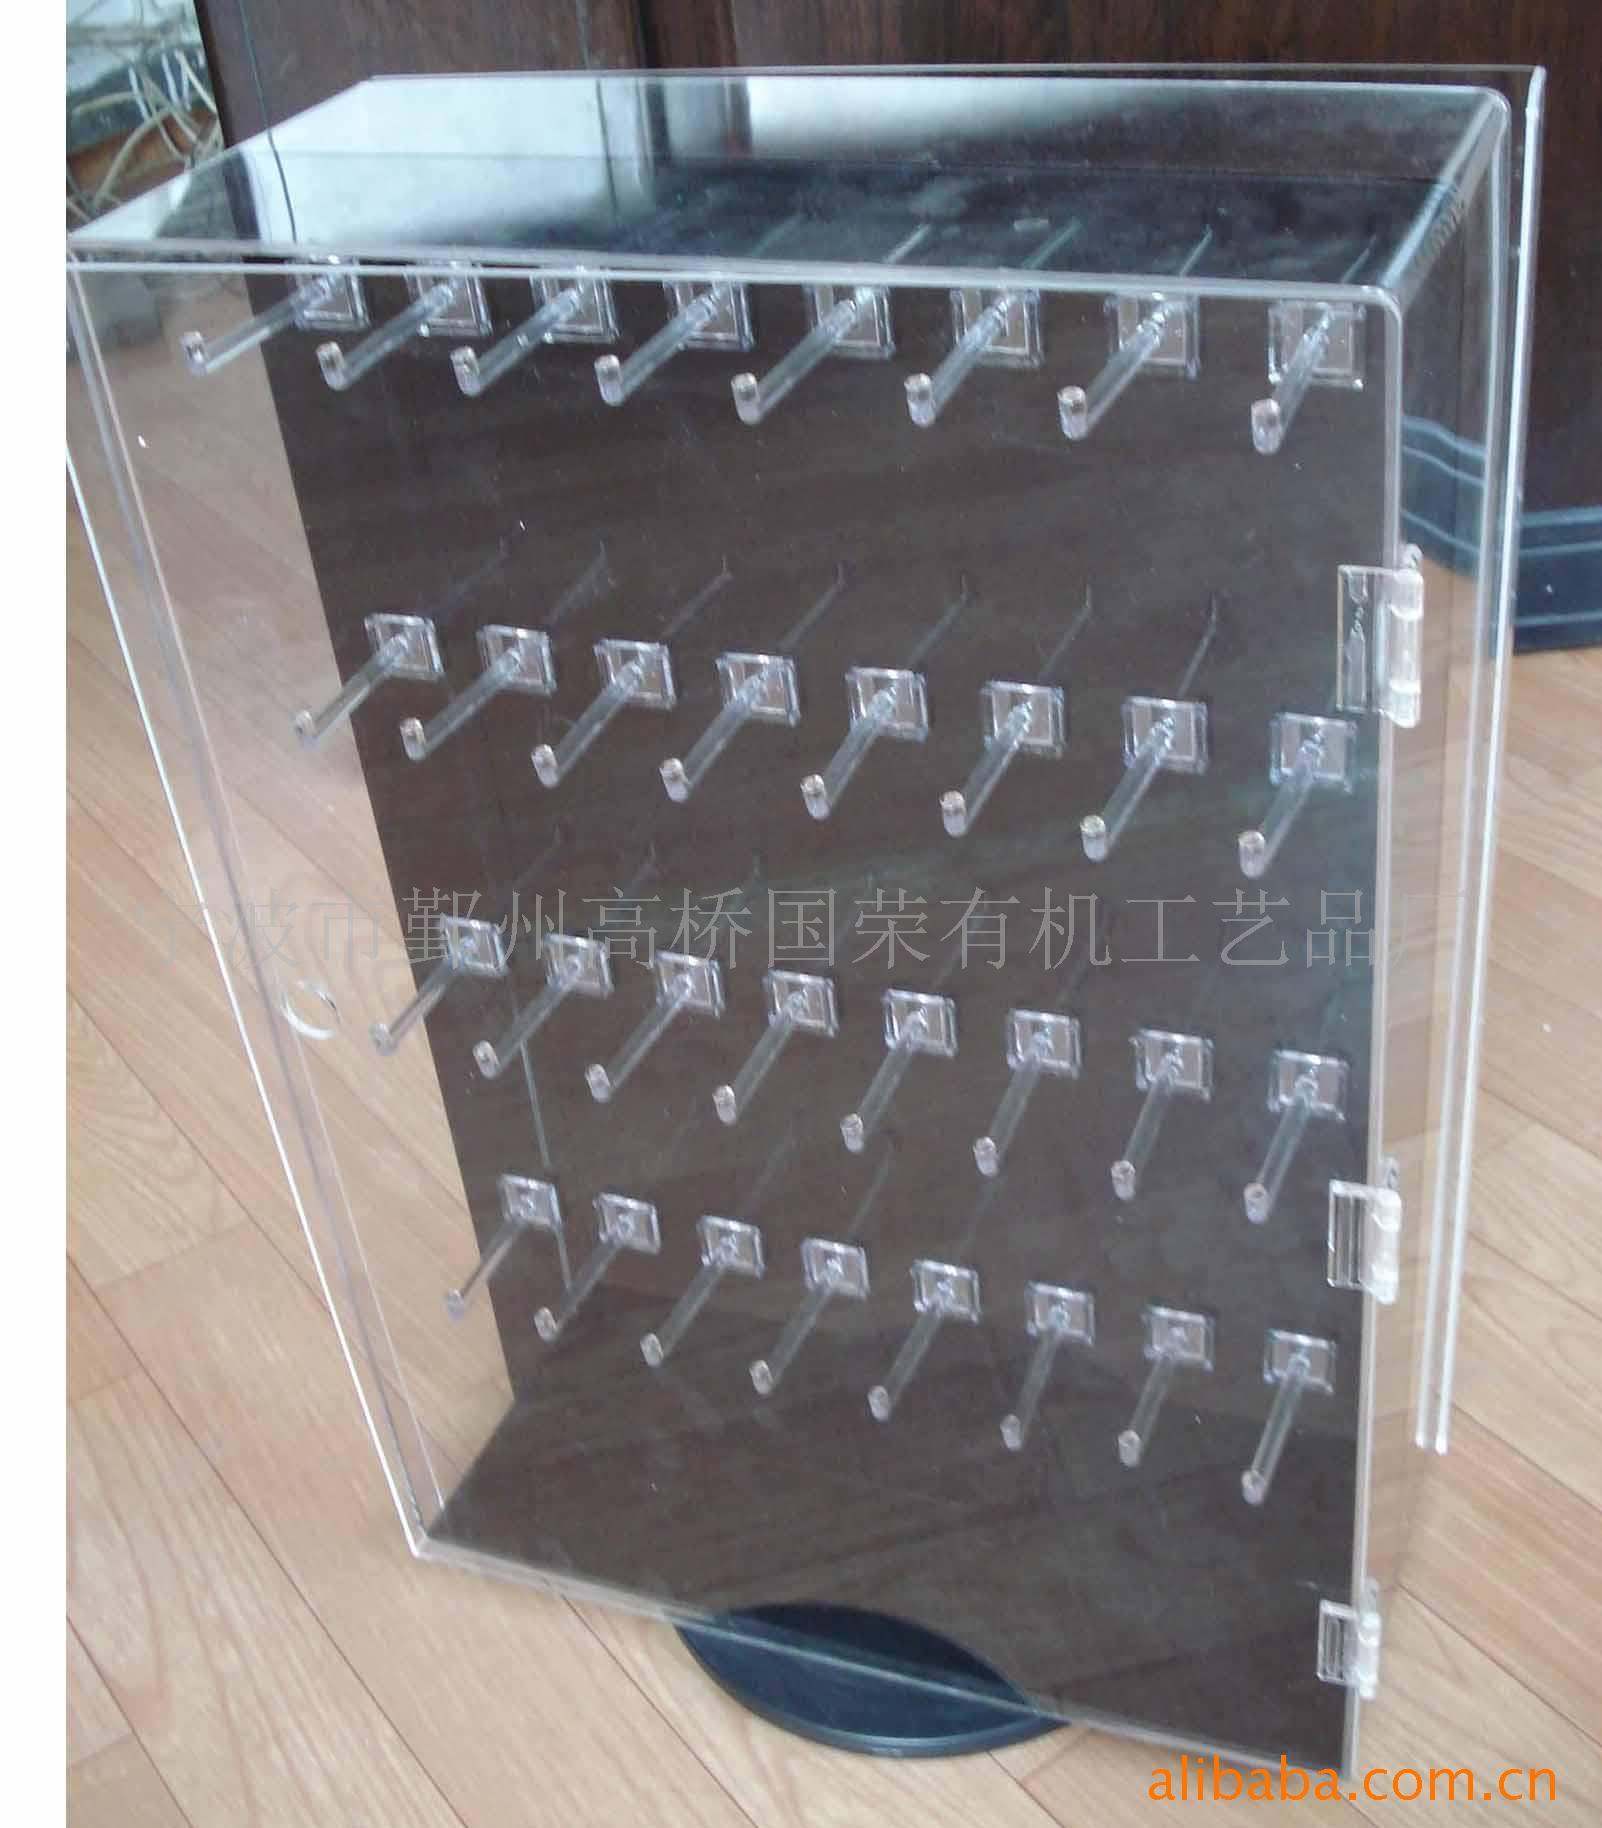 Clear Acrylic Flooring Plastic Shoe Storage Sunglasses Display Cabinet